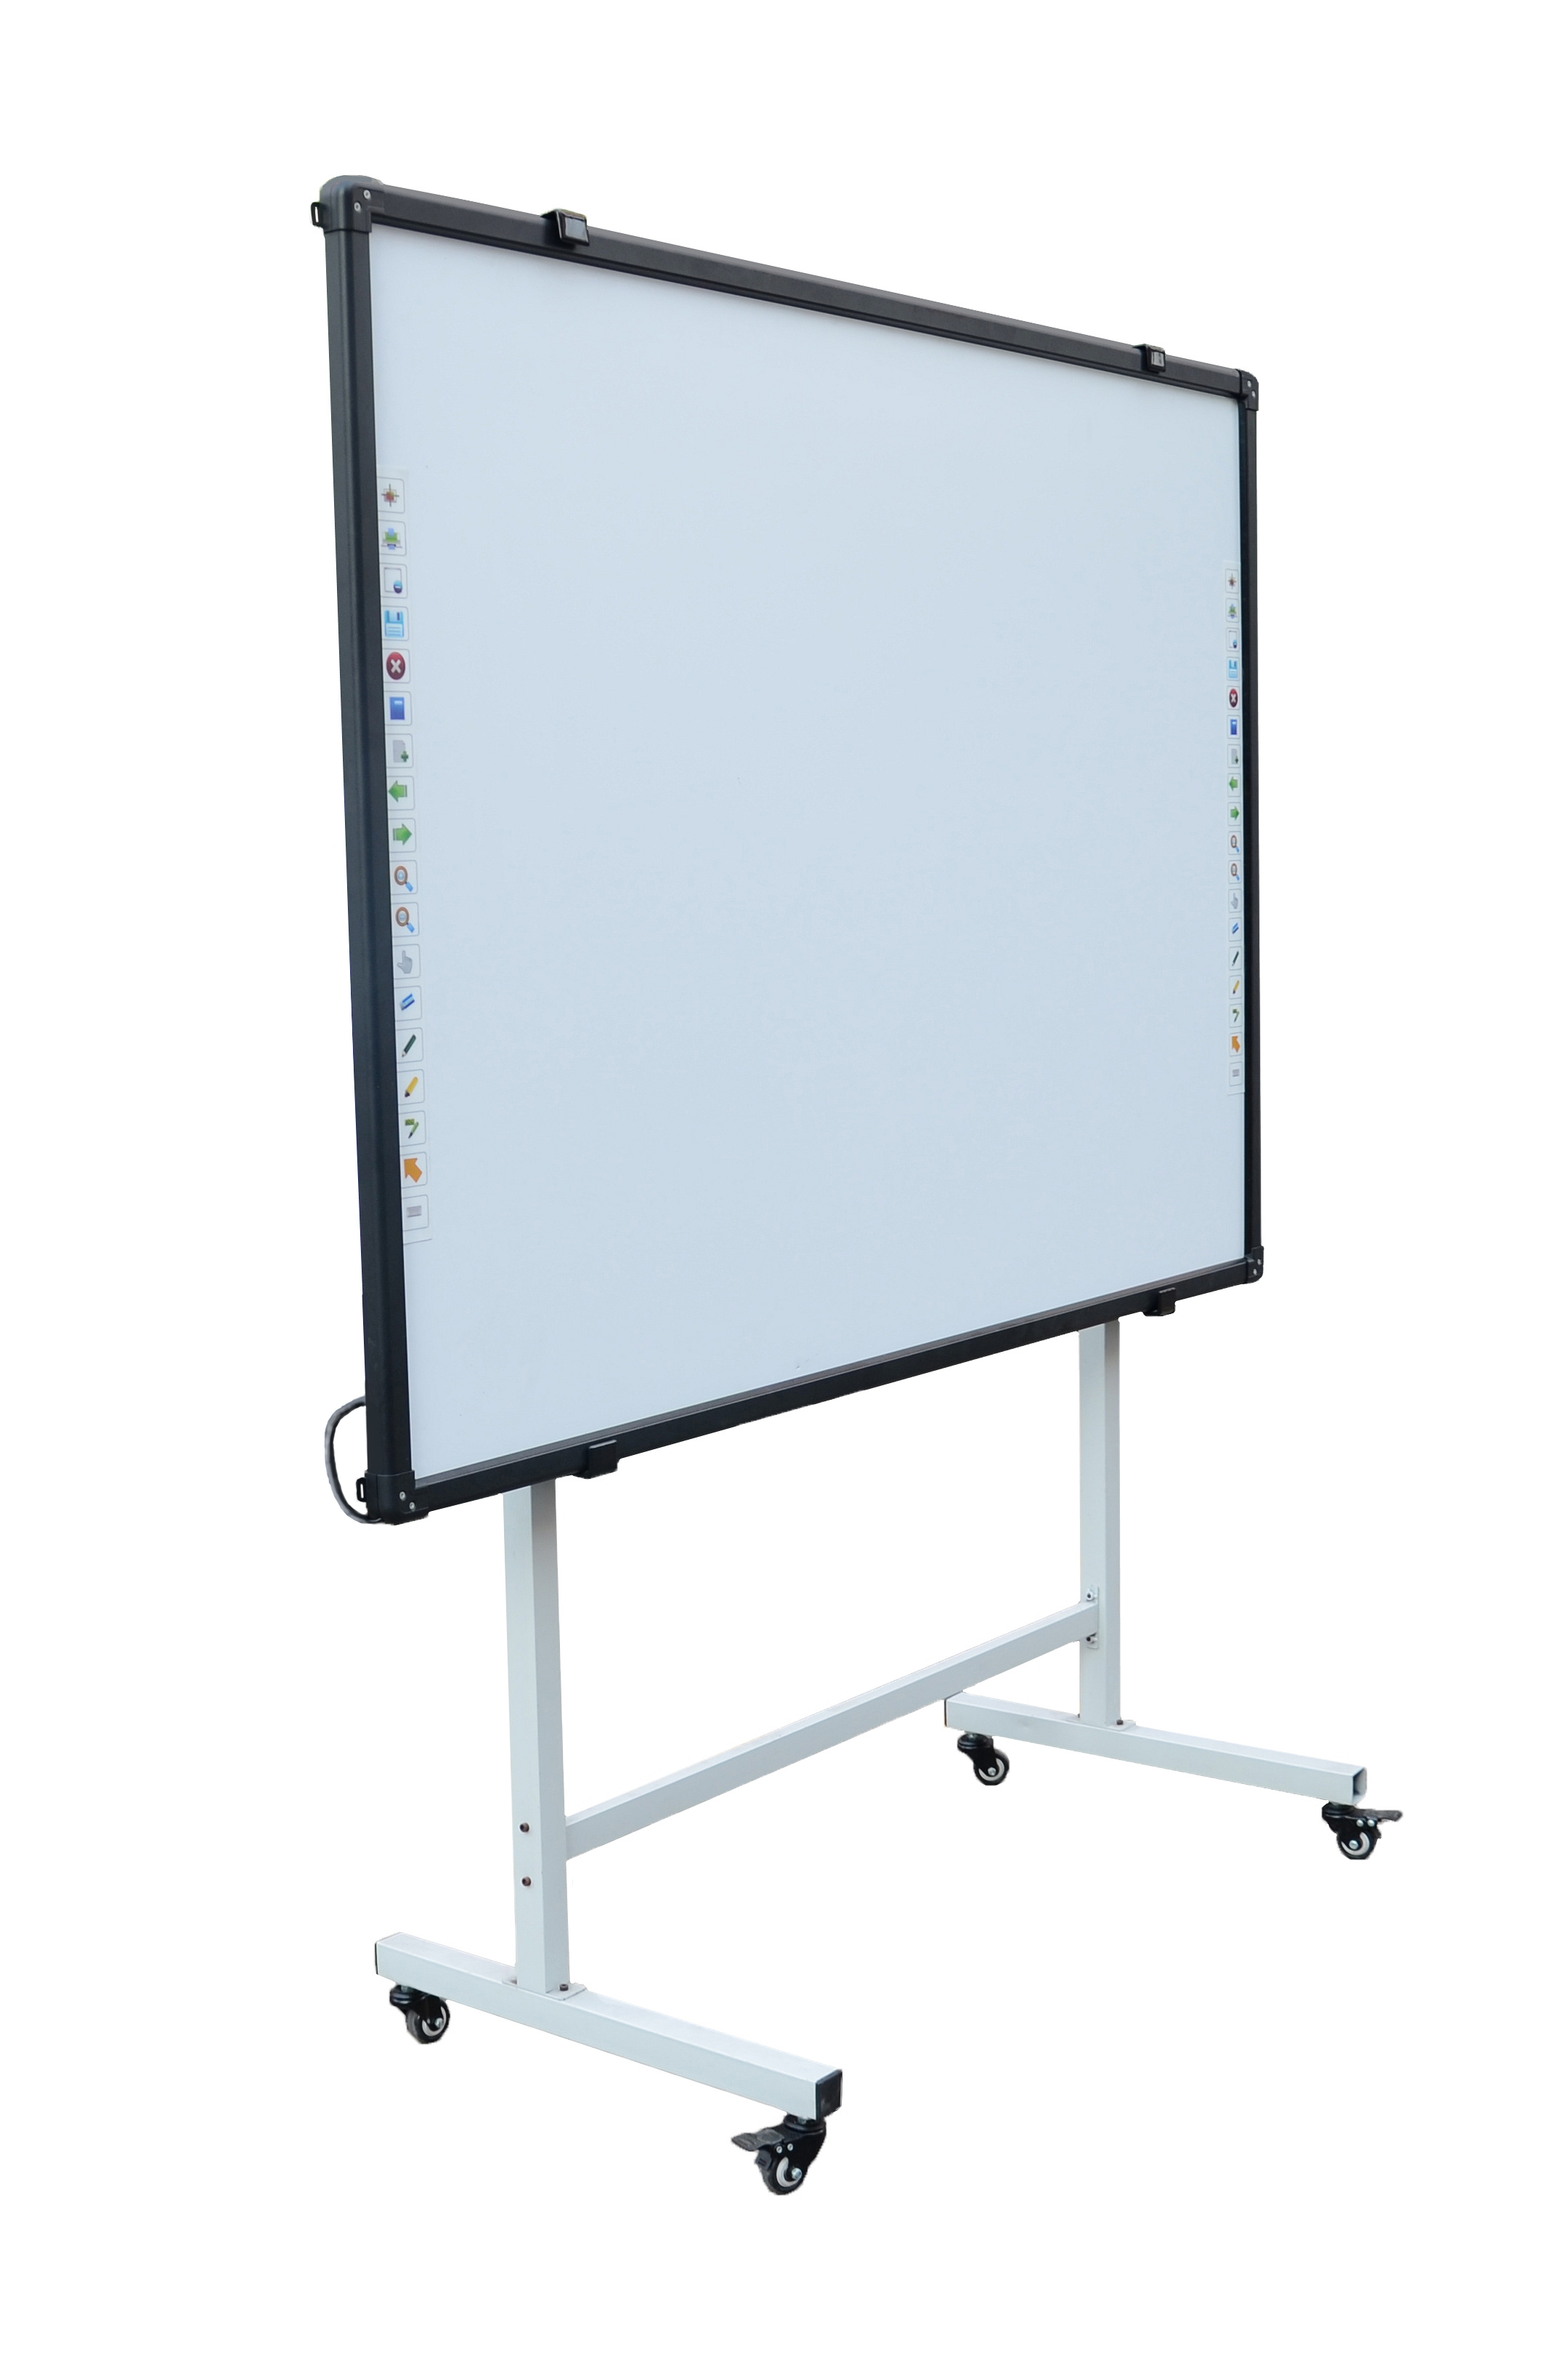 Riotouch Top Quality Finger Touch No Projector China Interactive Whiteboard